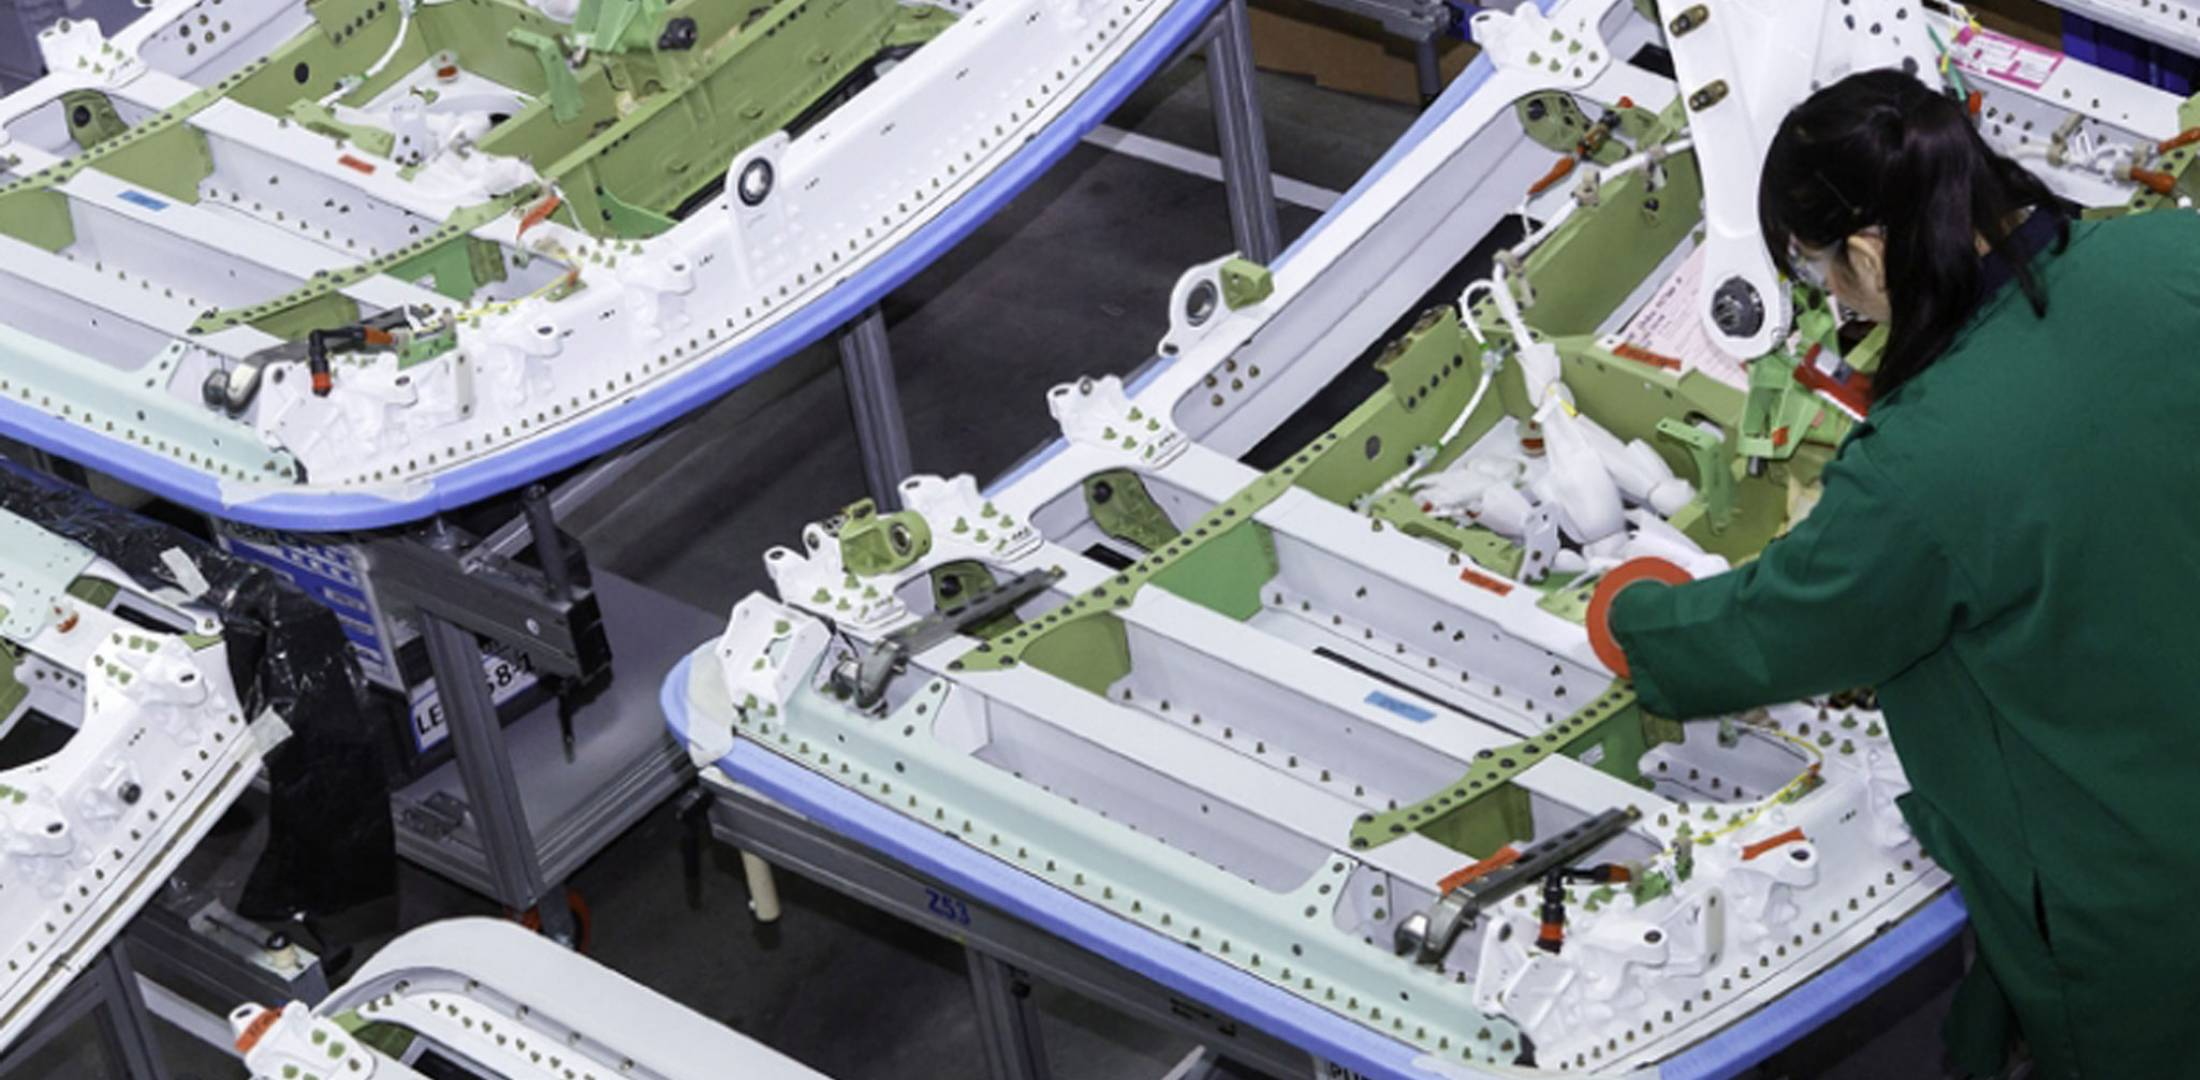 boeing wiring harness aerostructure supplier lat  co  re shows new wiring aerospace news  aerostructure supplier lat  co  re shows